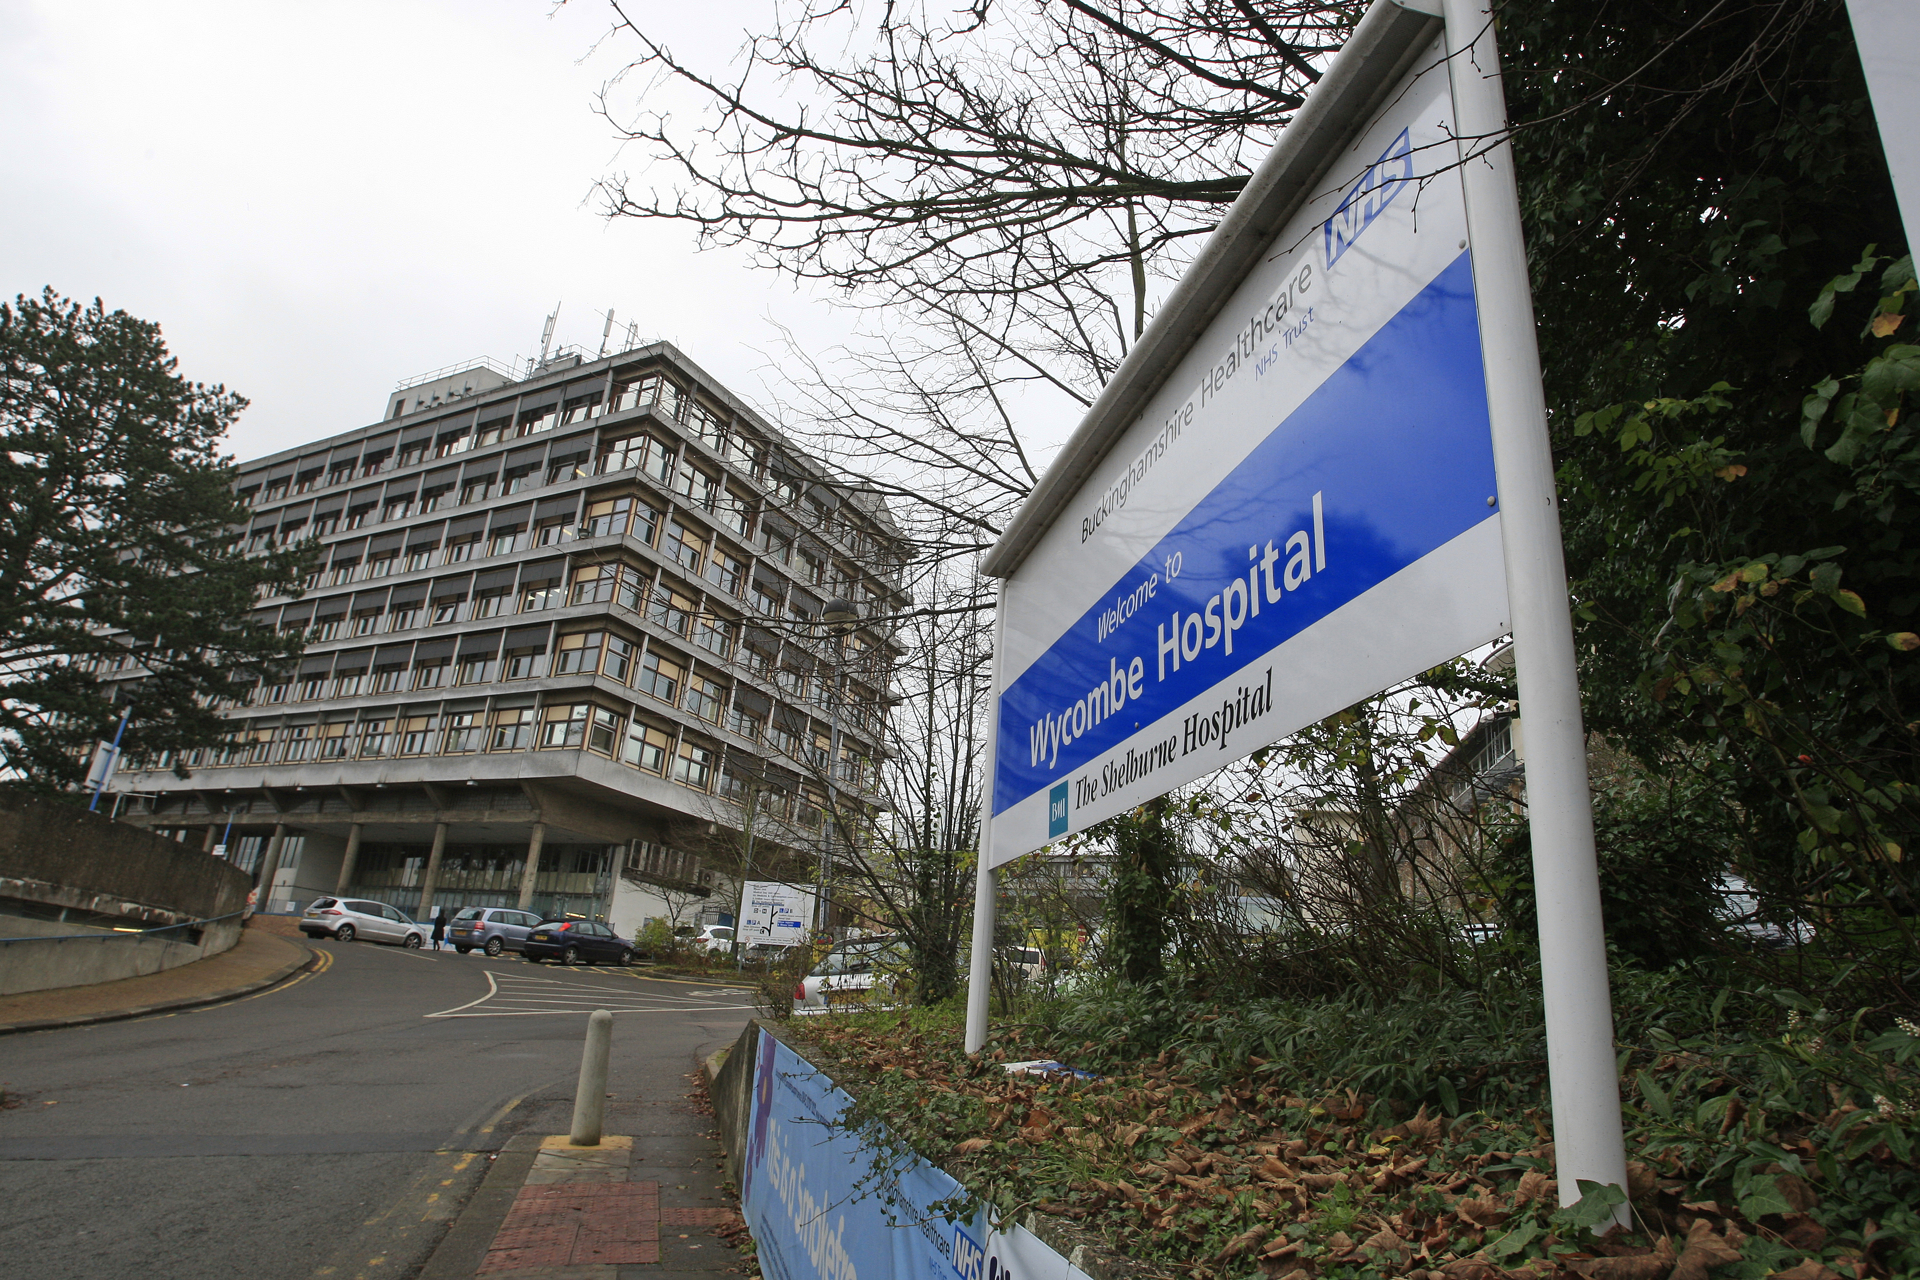 Picket line protests could take place outside Wycombe Hospital